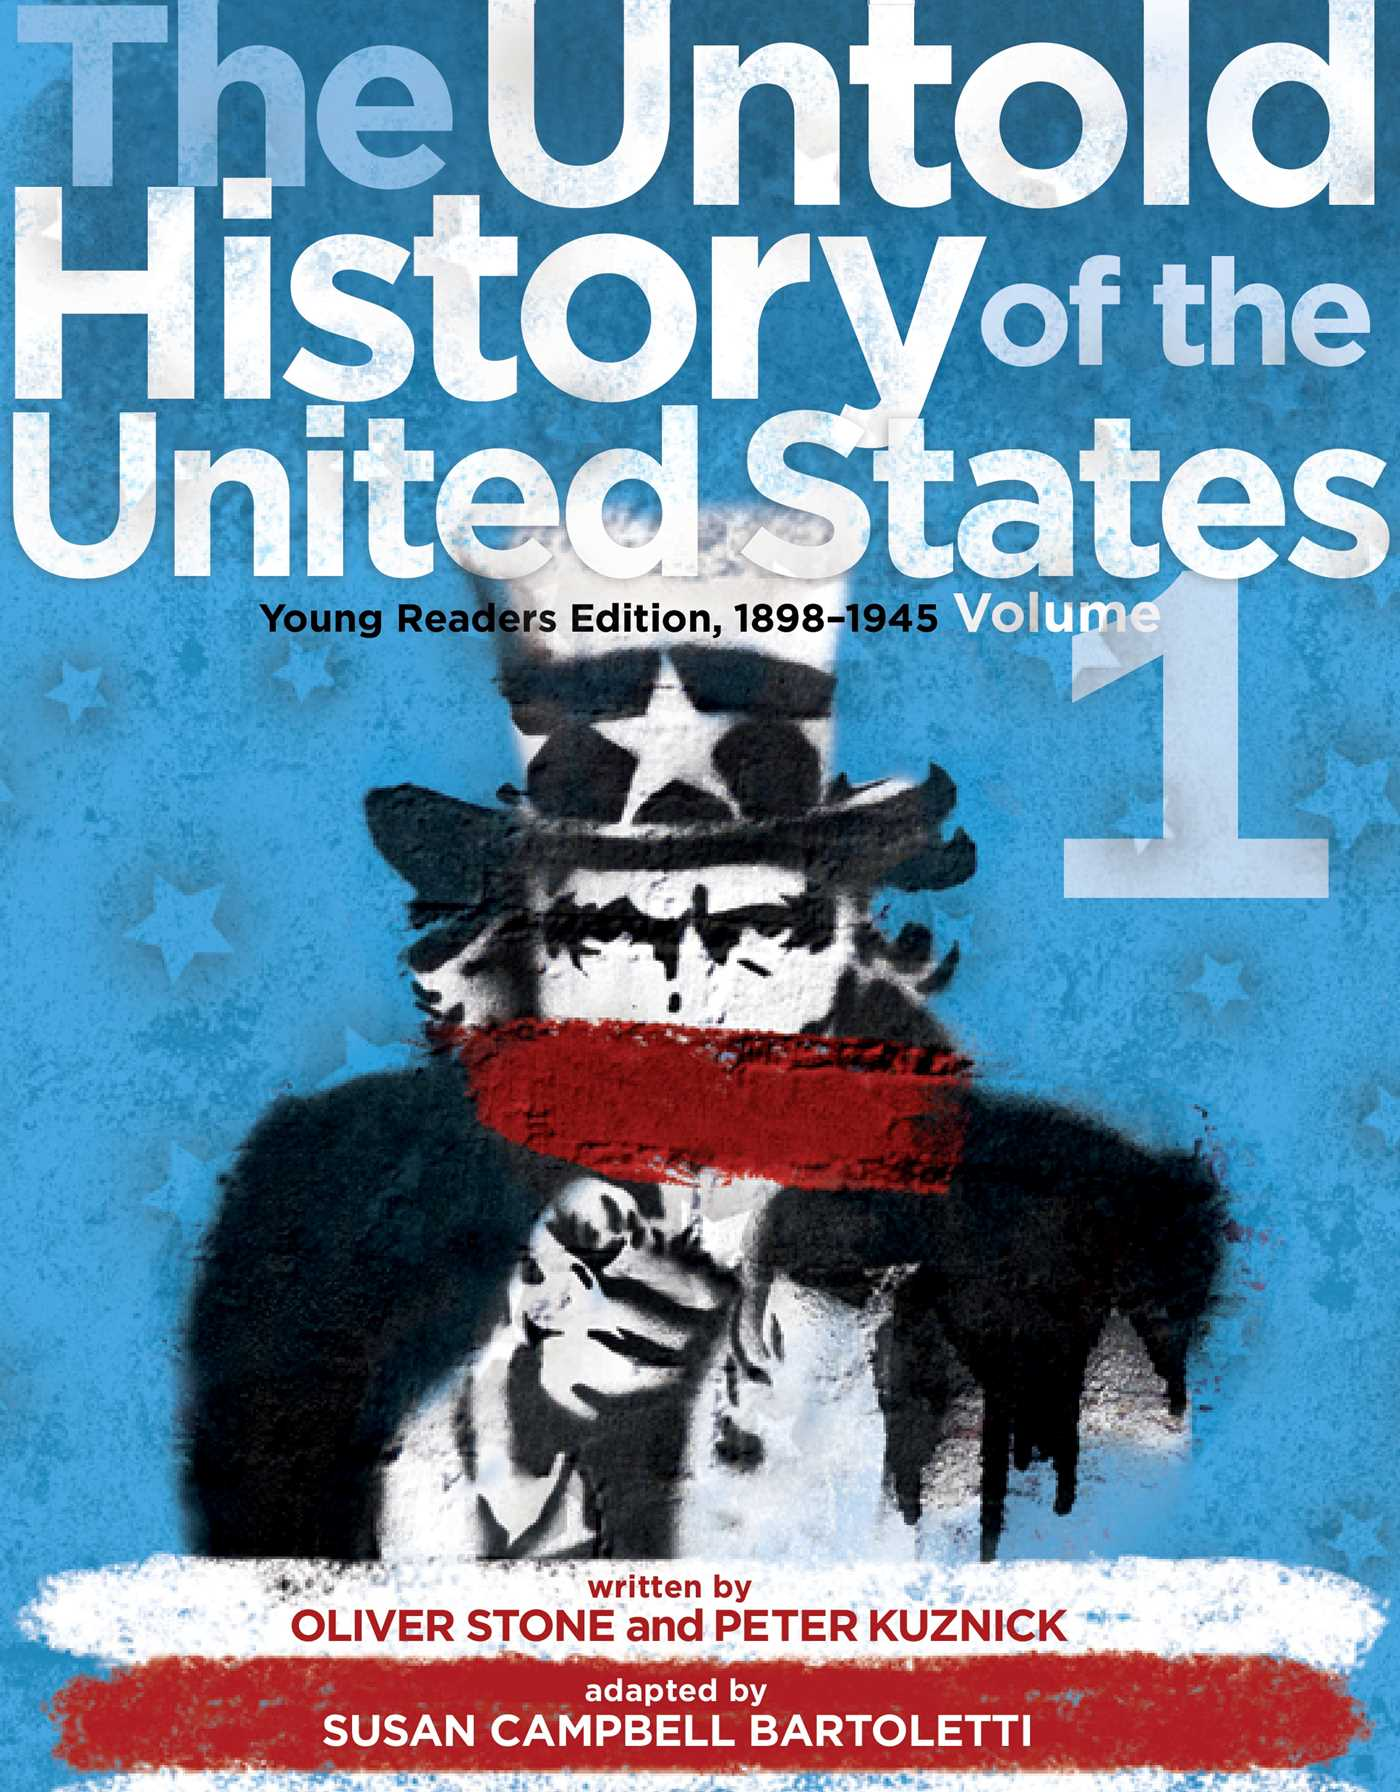 history book publisher: